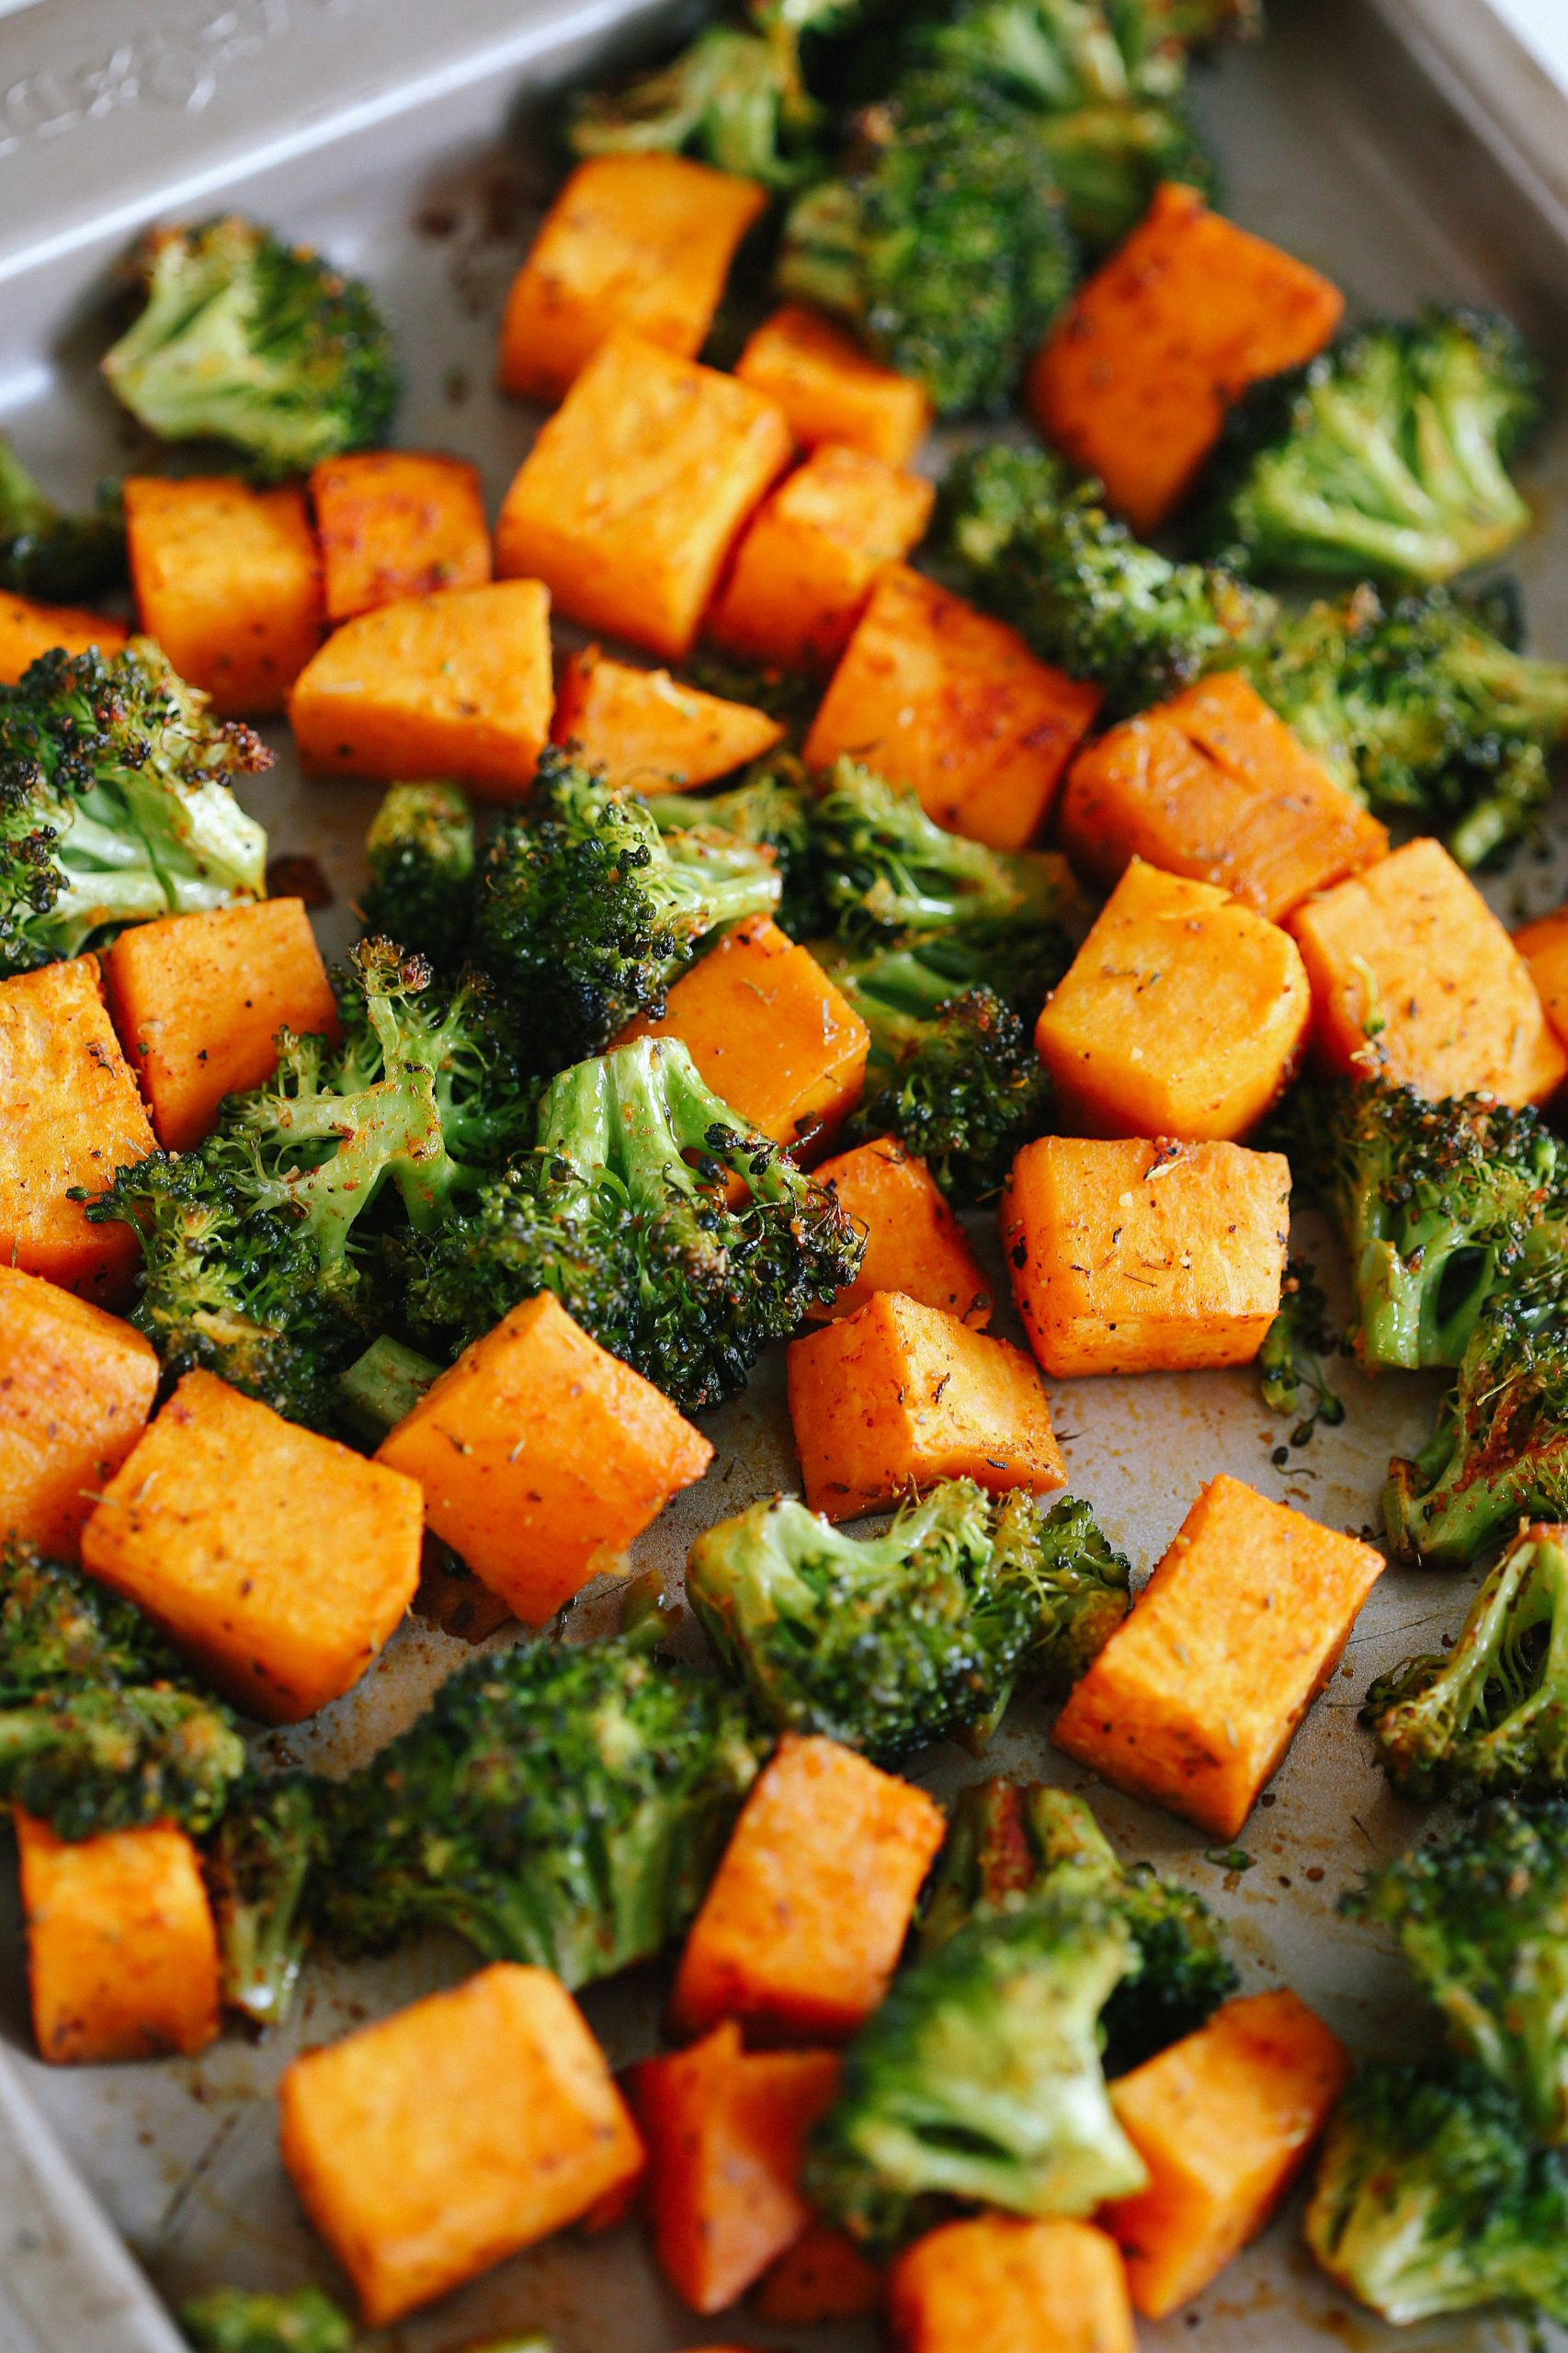 Perfectly Roasted Broccoli & Sweet Potatoes - Vegetable Recipes Healthy